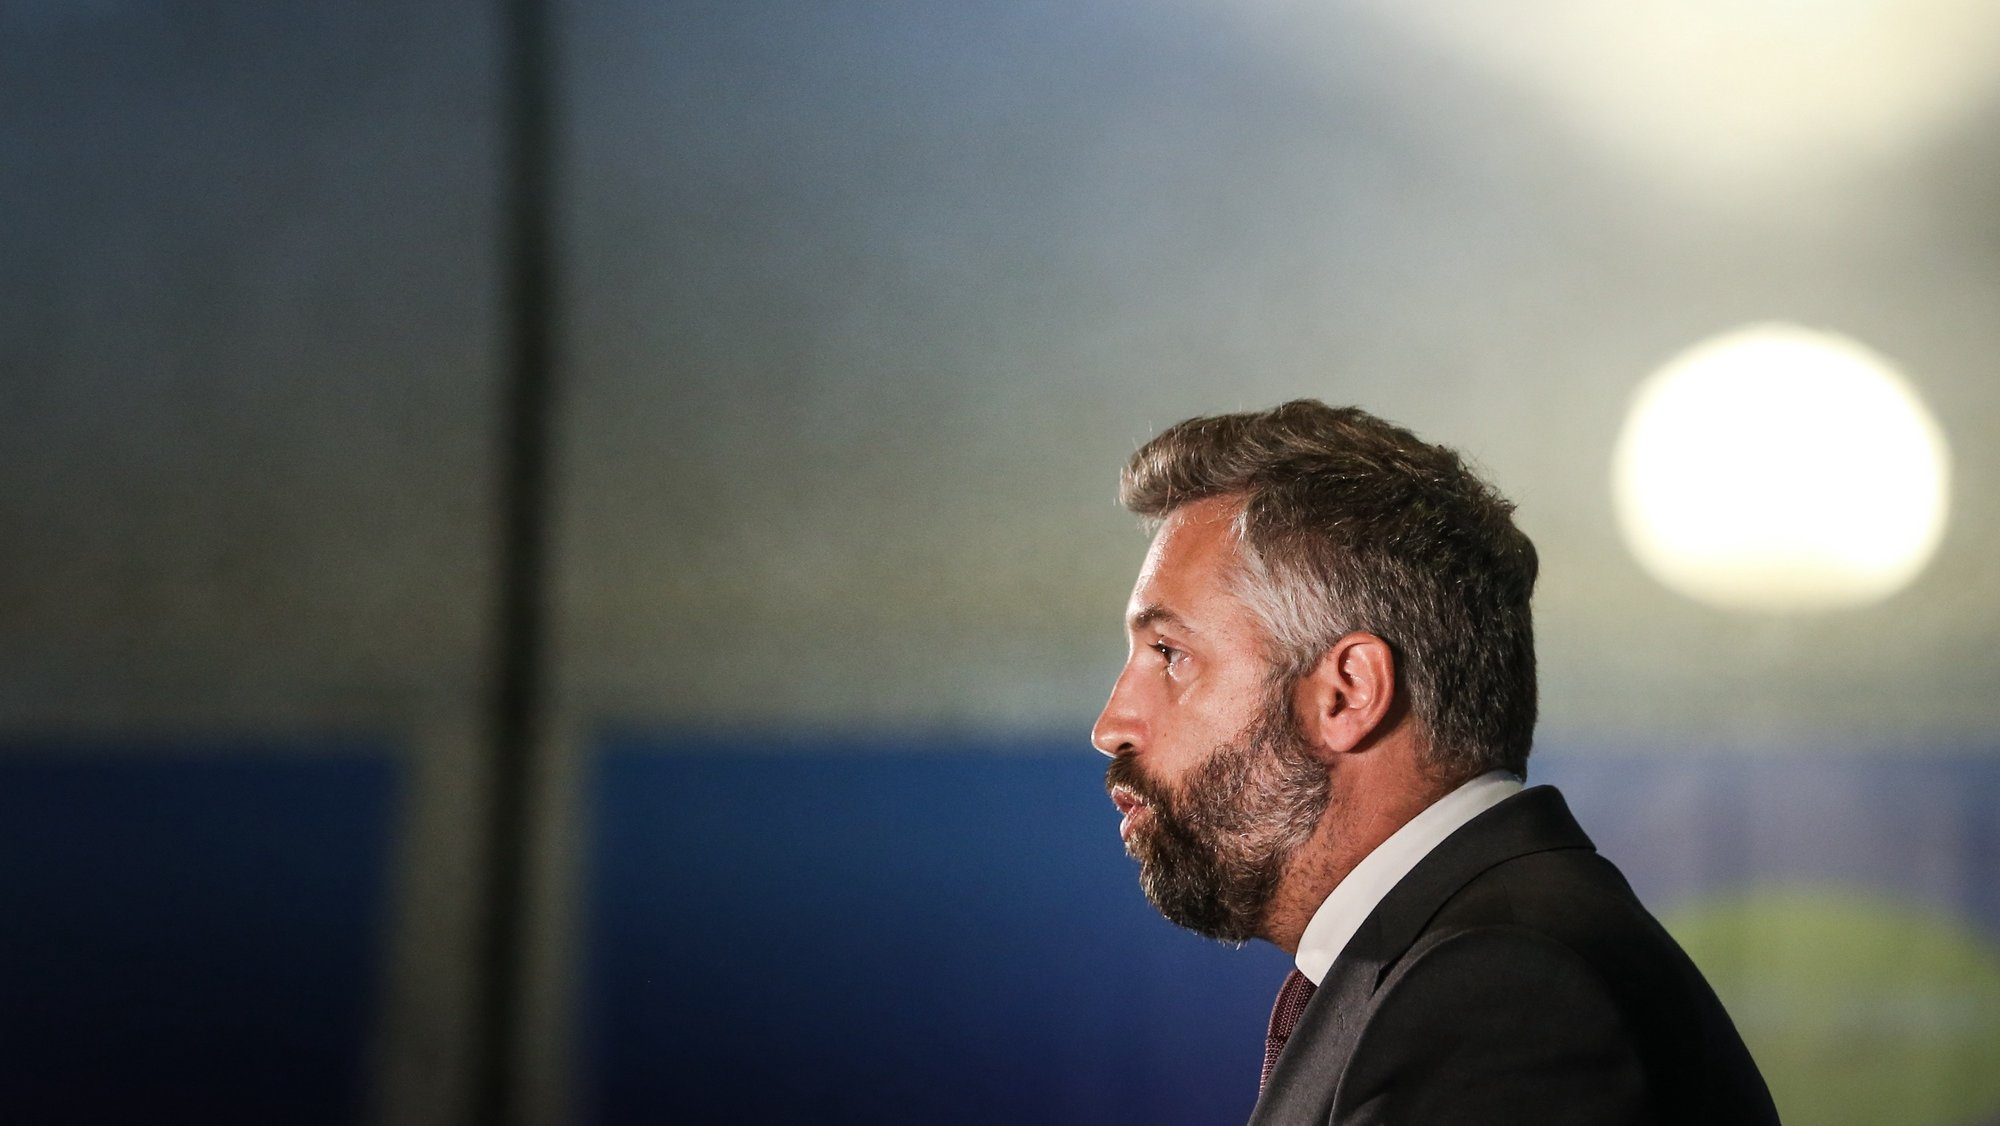 Portuguese Minister of Infrastructure and Housing Pedro Nuno Santos attends to Connecting Europe Express ceremony in Gare do Oriente train station in Lisbon, Portugal, 02 September. RODRIGO ANTUNES/LUSA